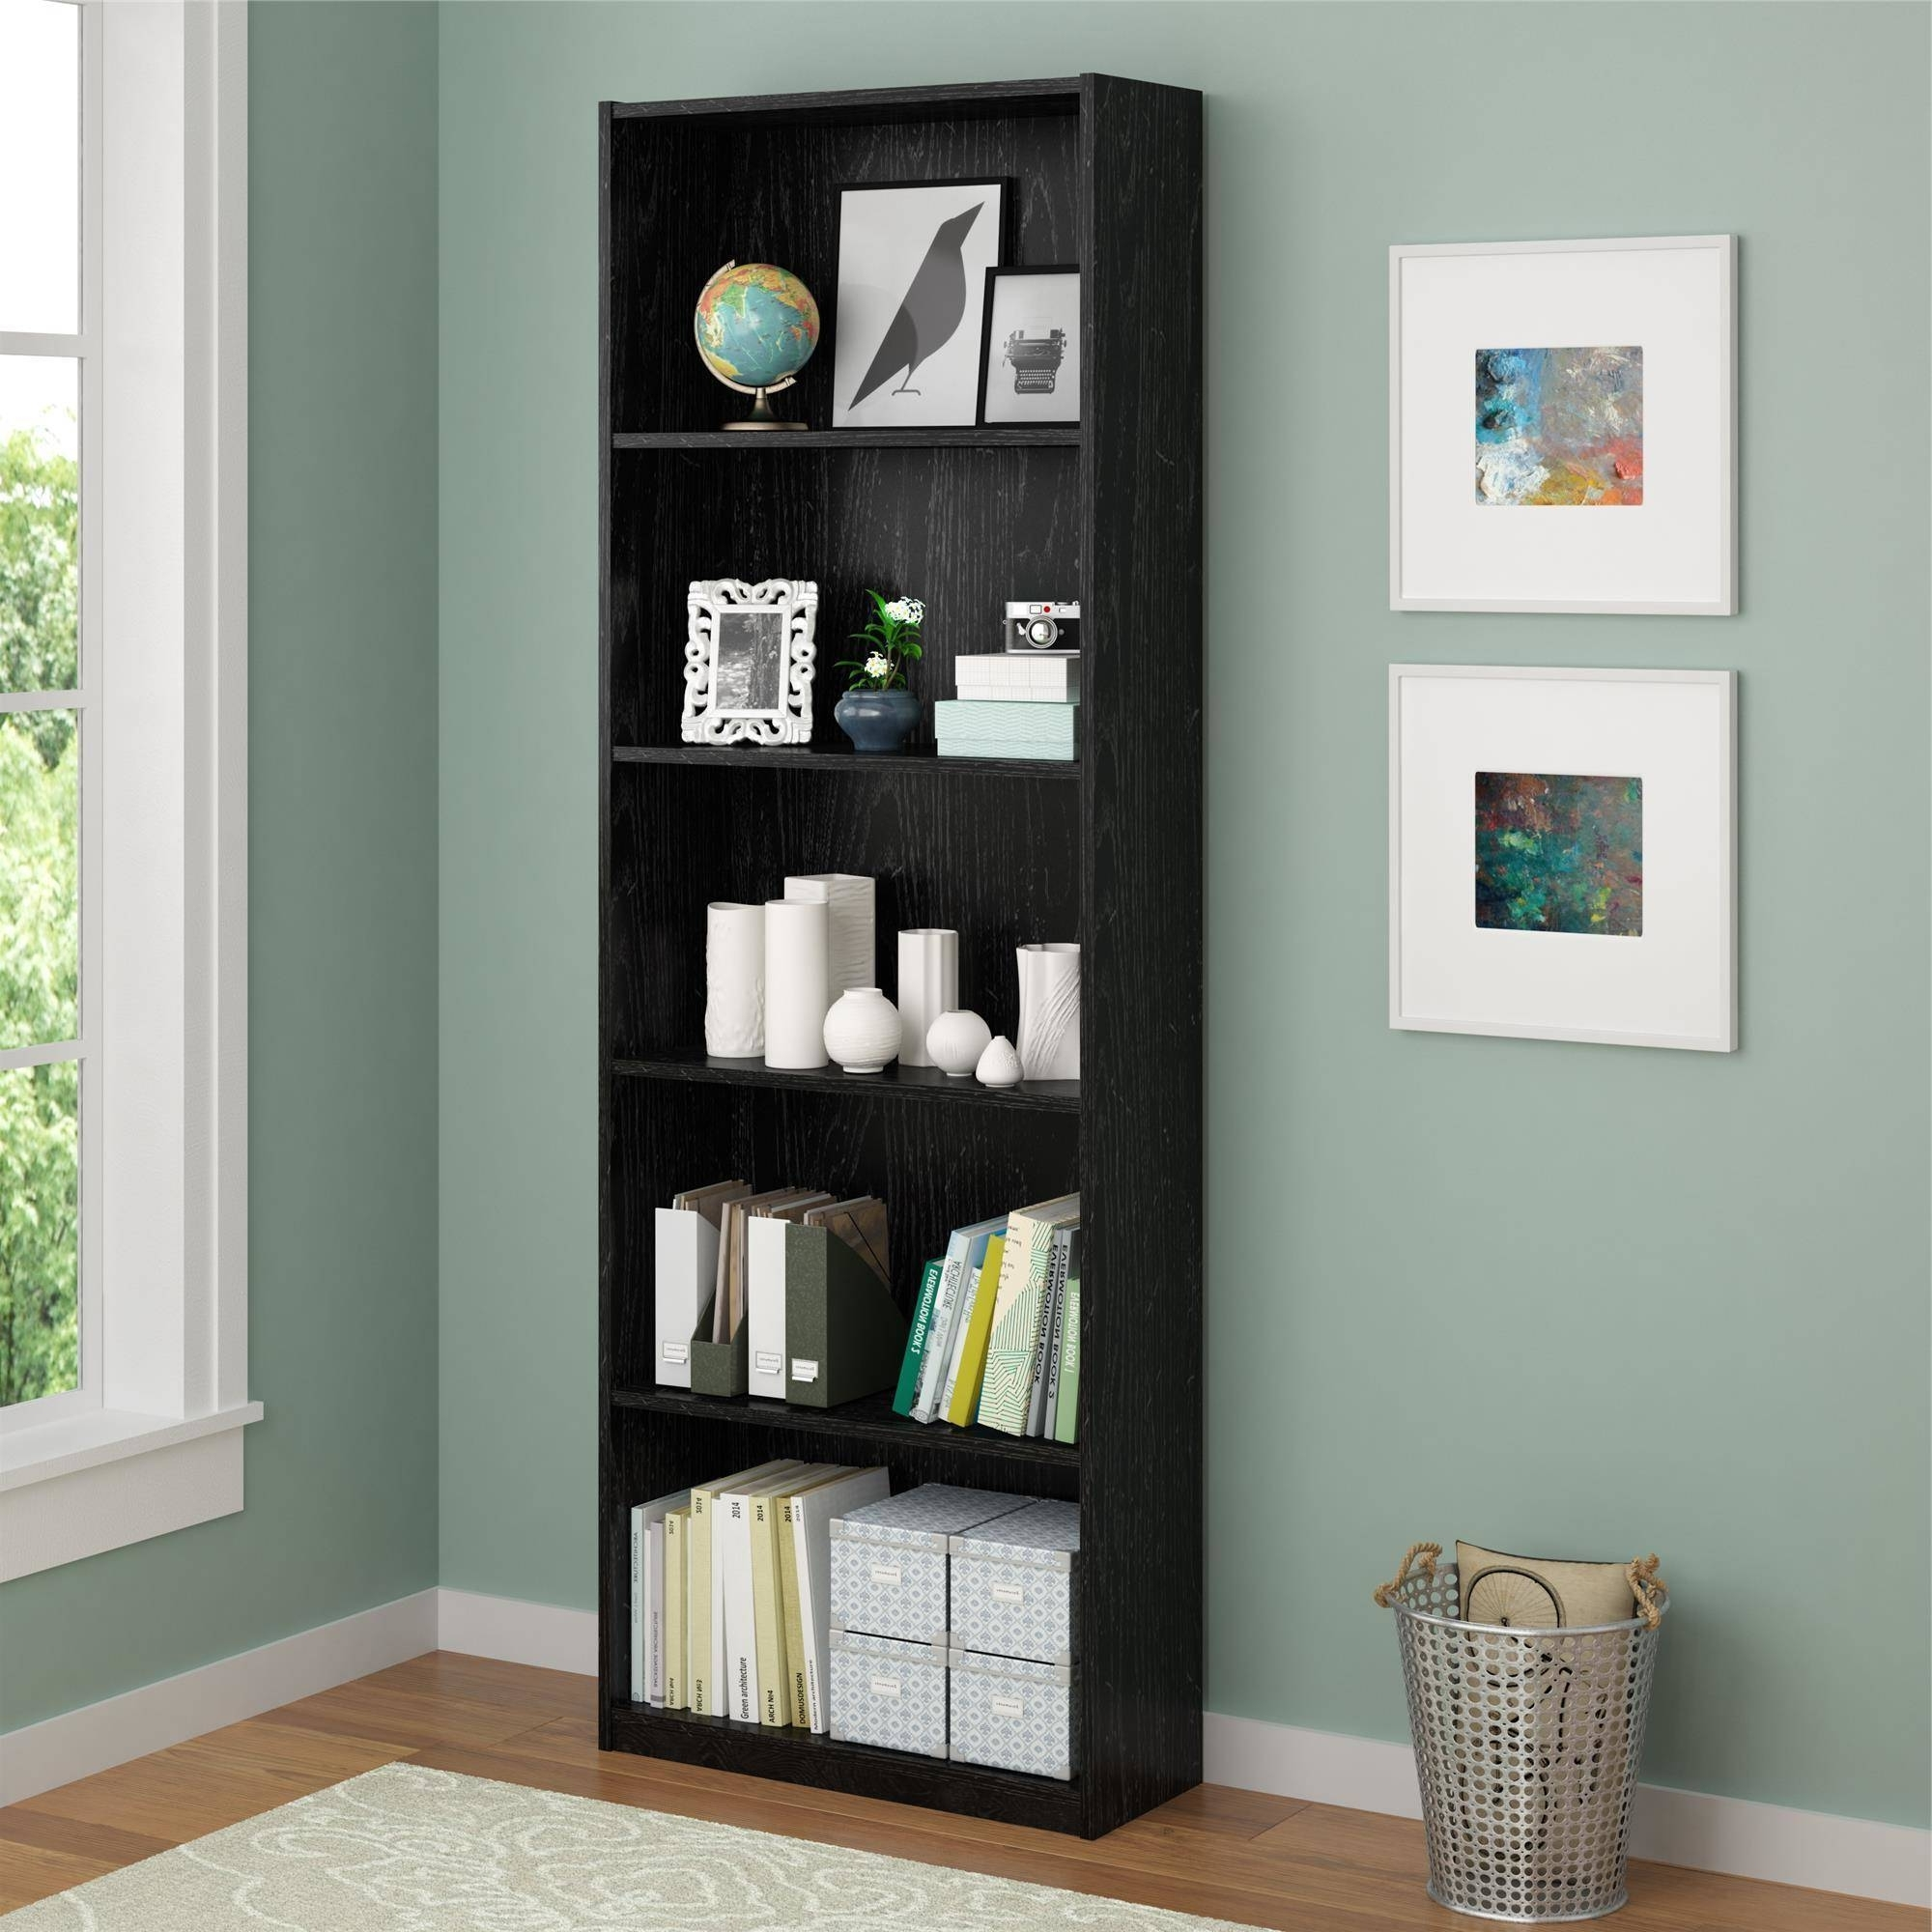 Ameriwood 5 Shelf Bookcases, Set Of 2 (Mix And Match) – Walmart Within Latest Espresso Bookcases (View 3 of 15)